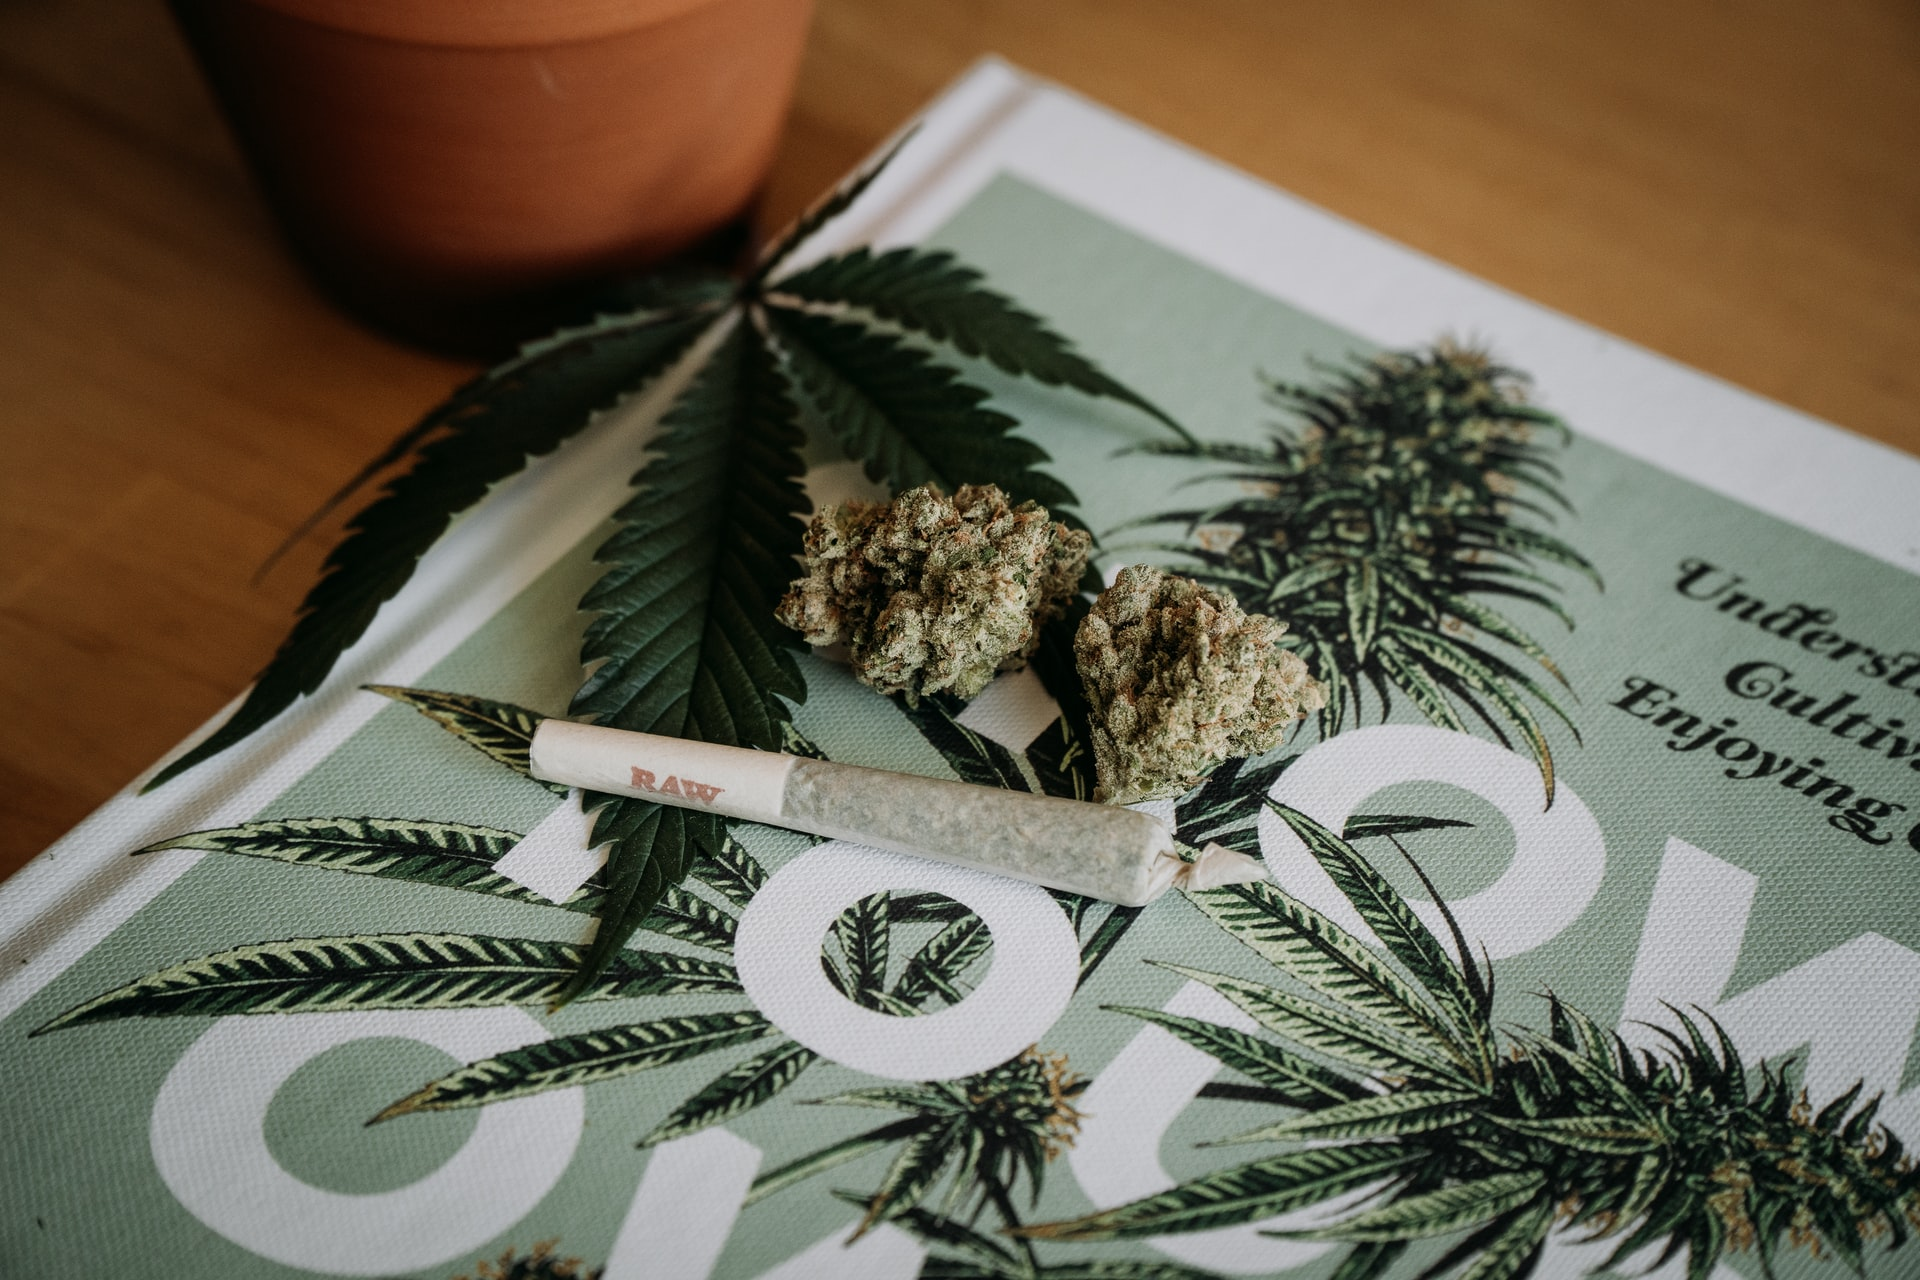 a petition to legalize Oklahoma recreational cannabis has been filed in the state